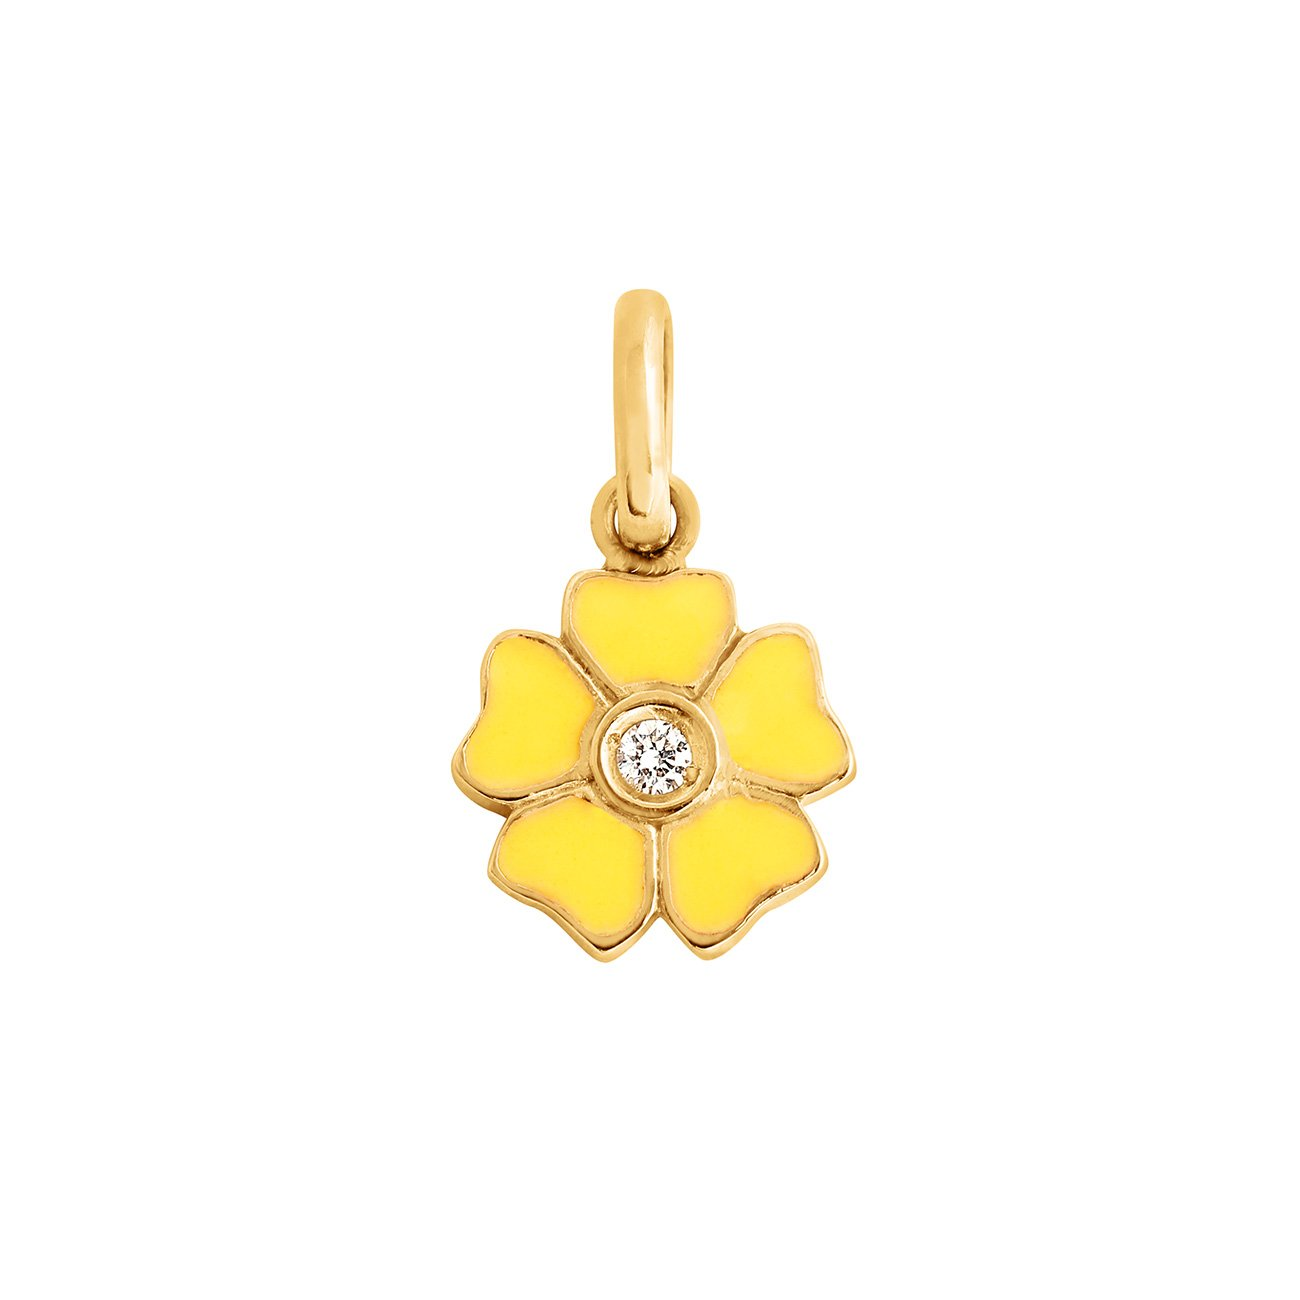 Gigi Clozeau - Flower Lemon diamond pendant, Yellow Gold